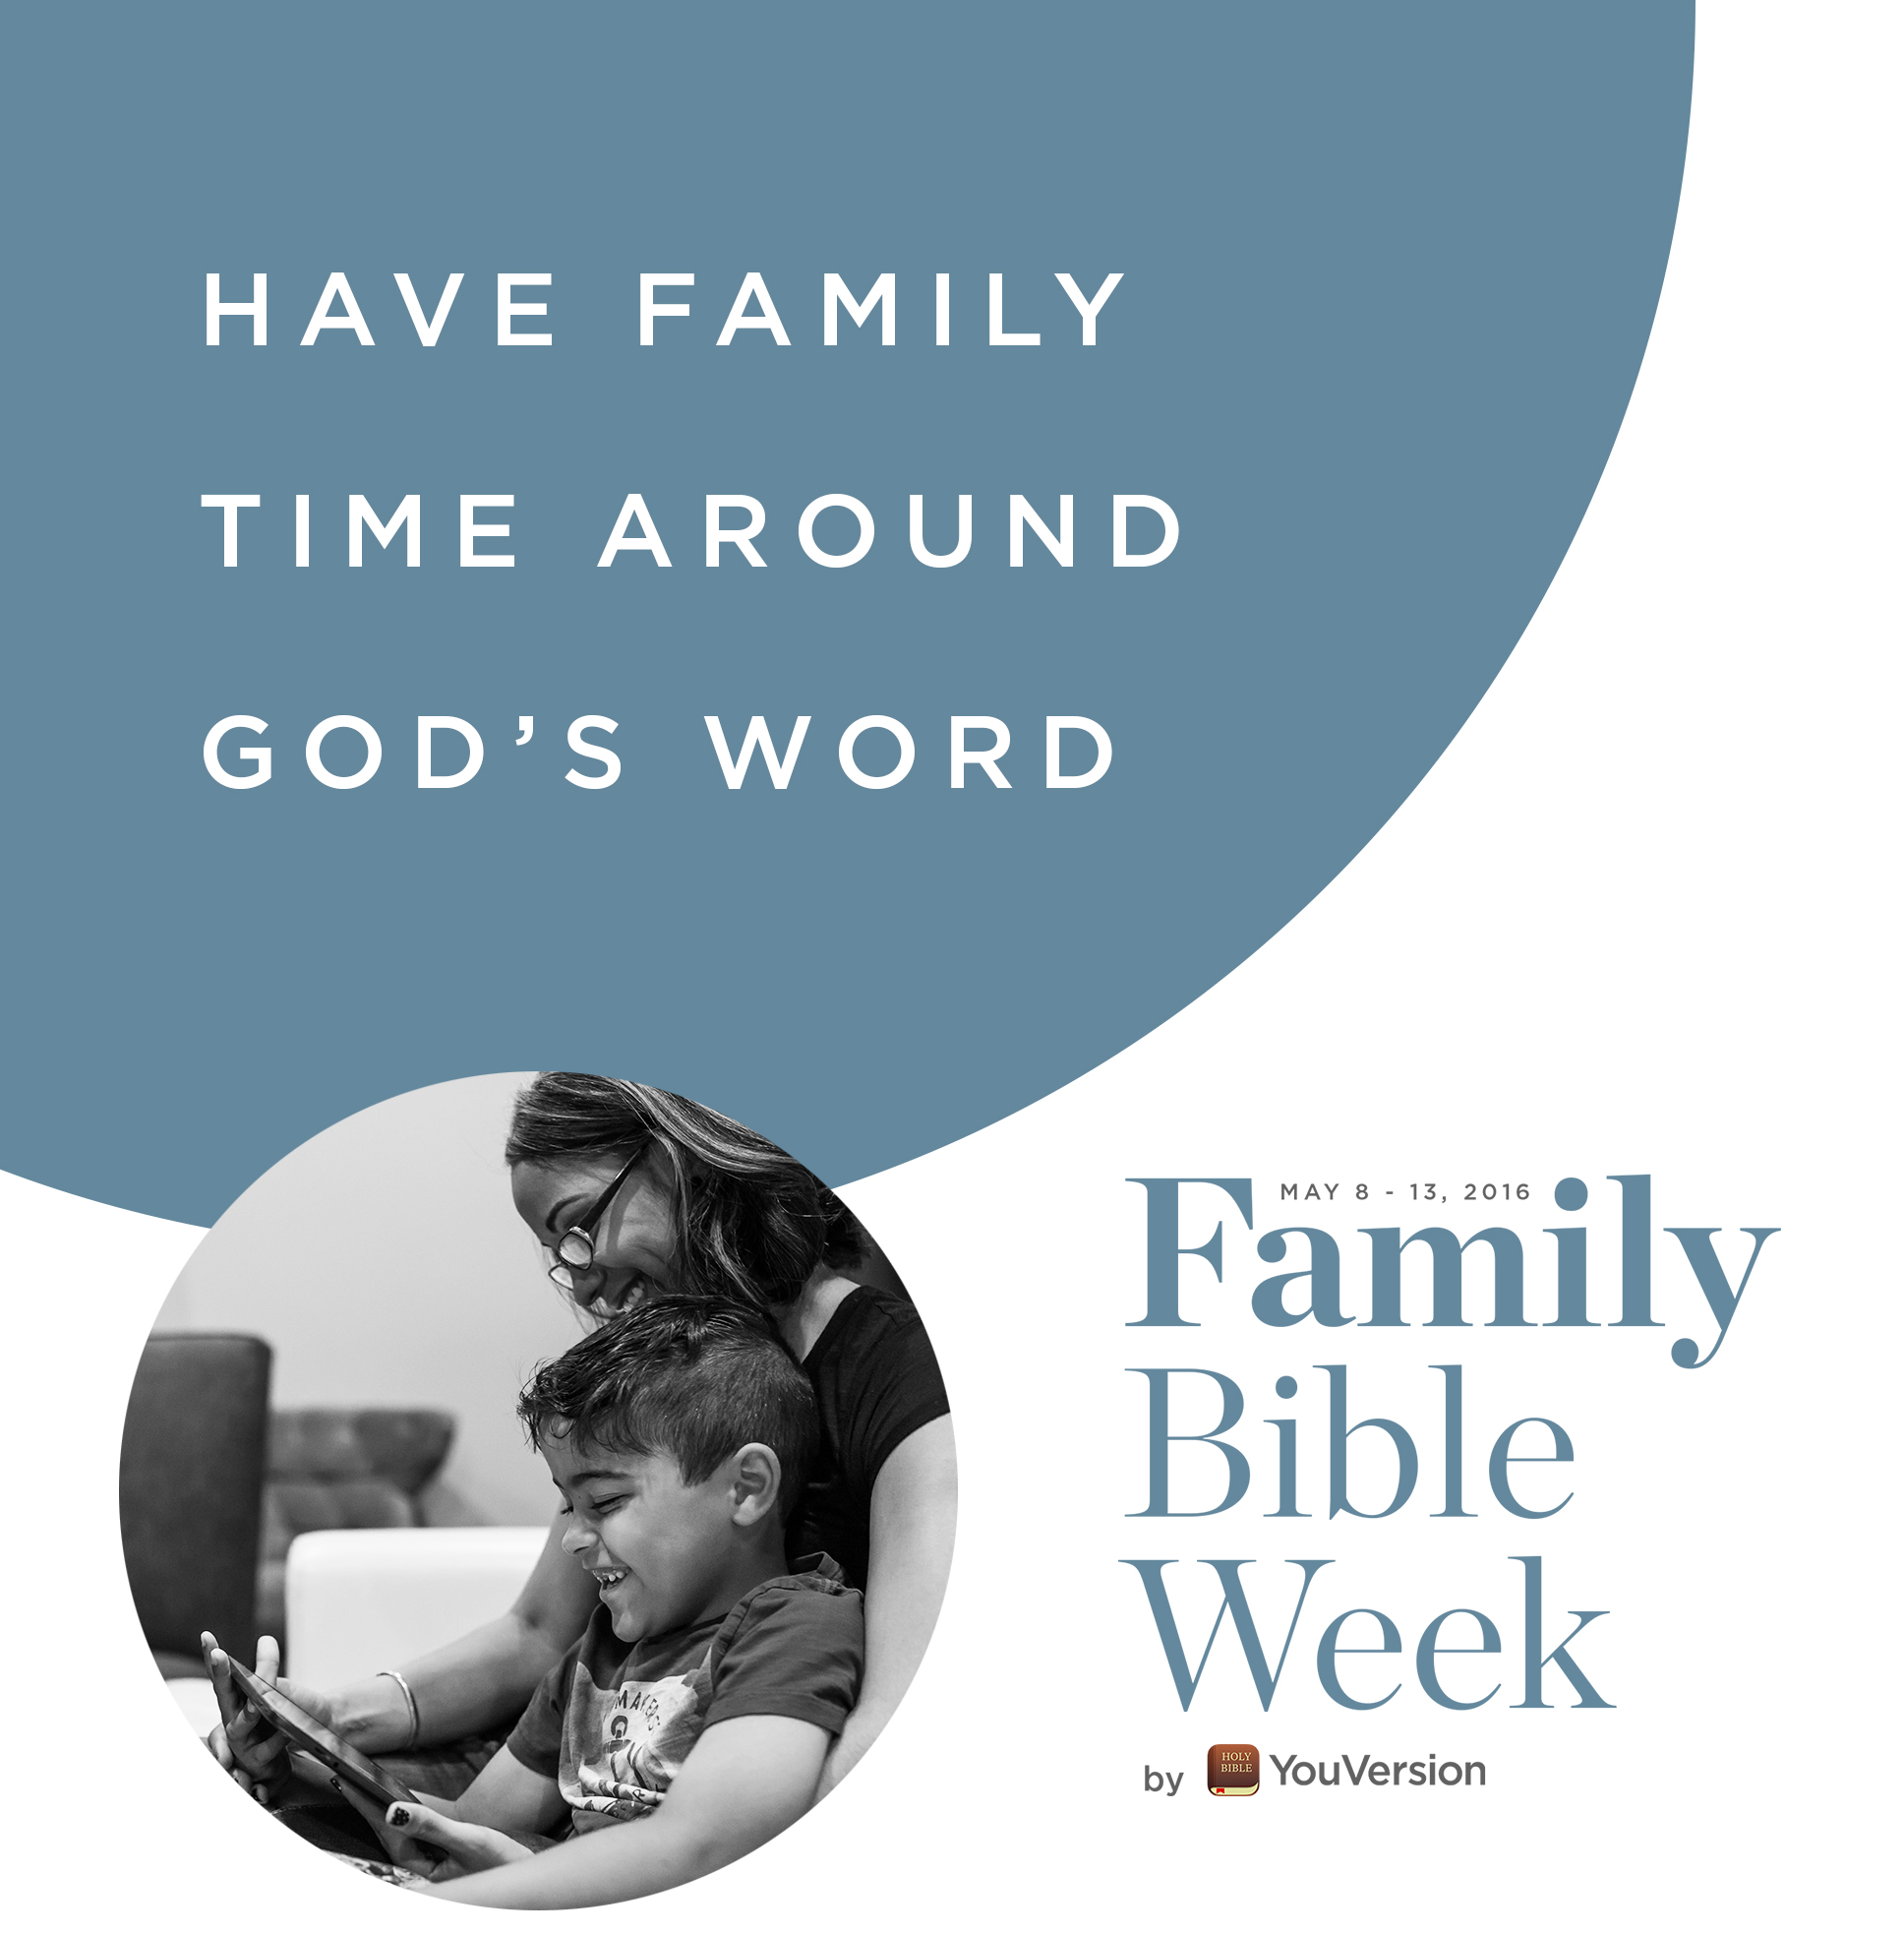 Family Bible Week: Have family time around God's word